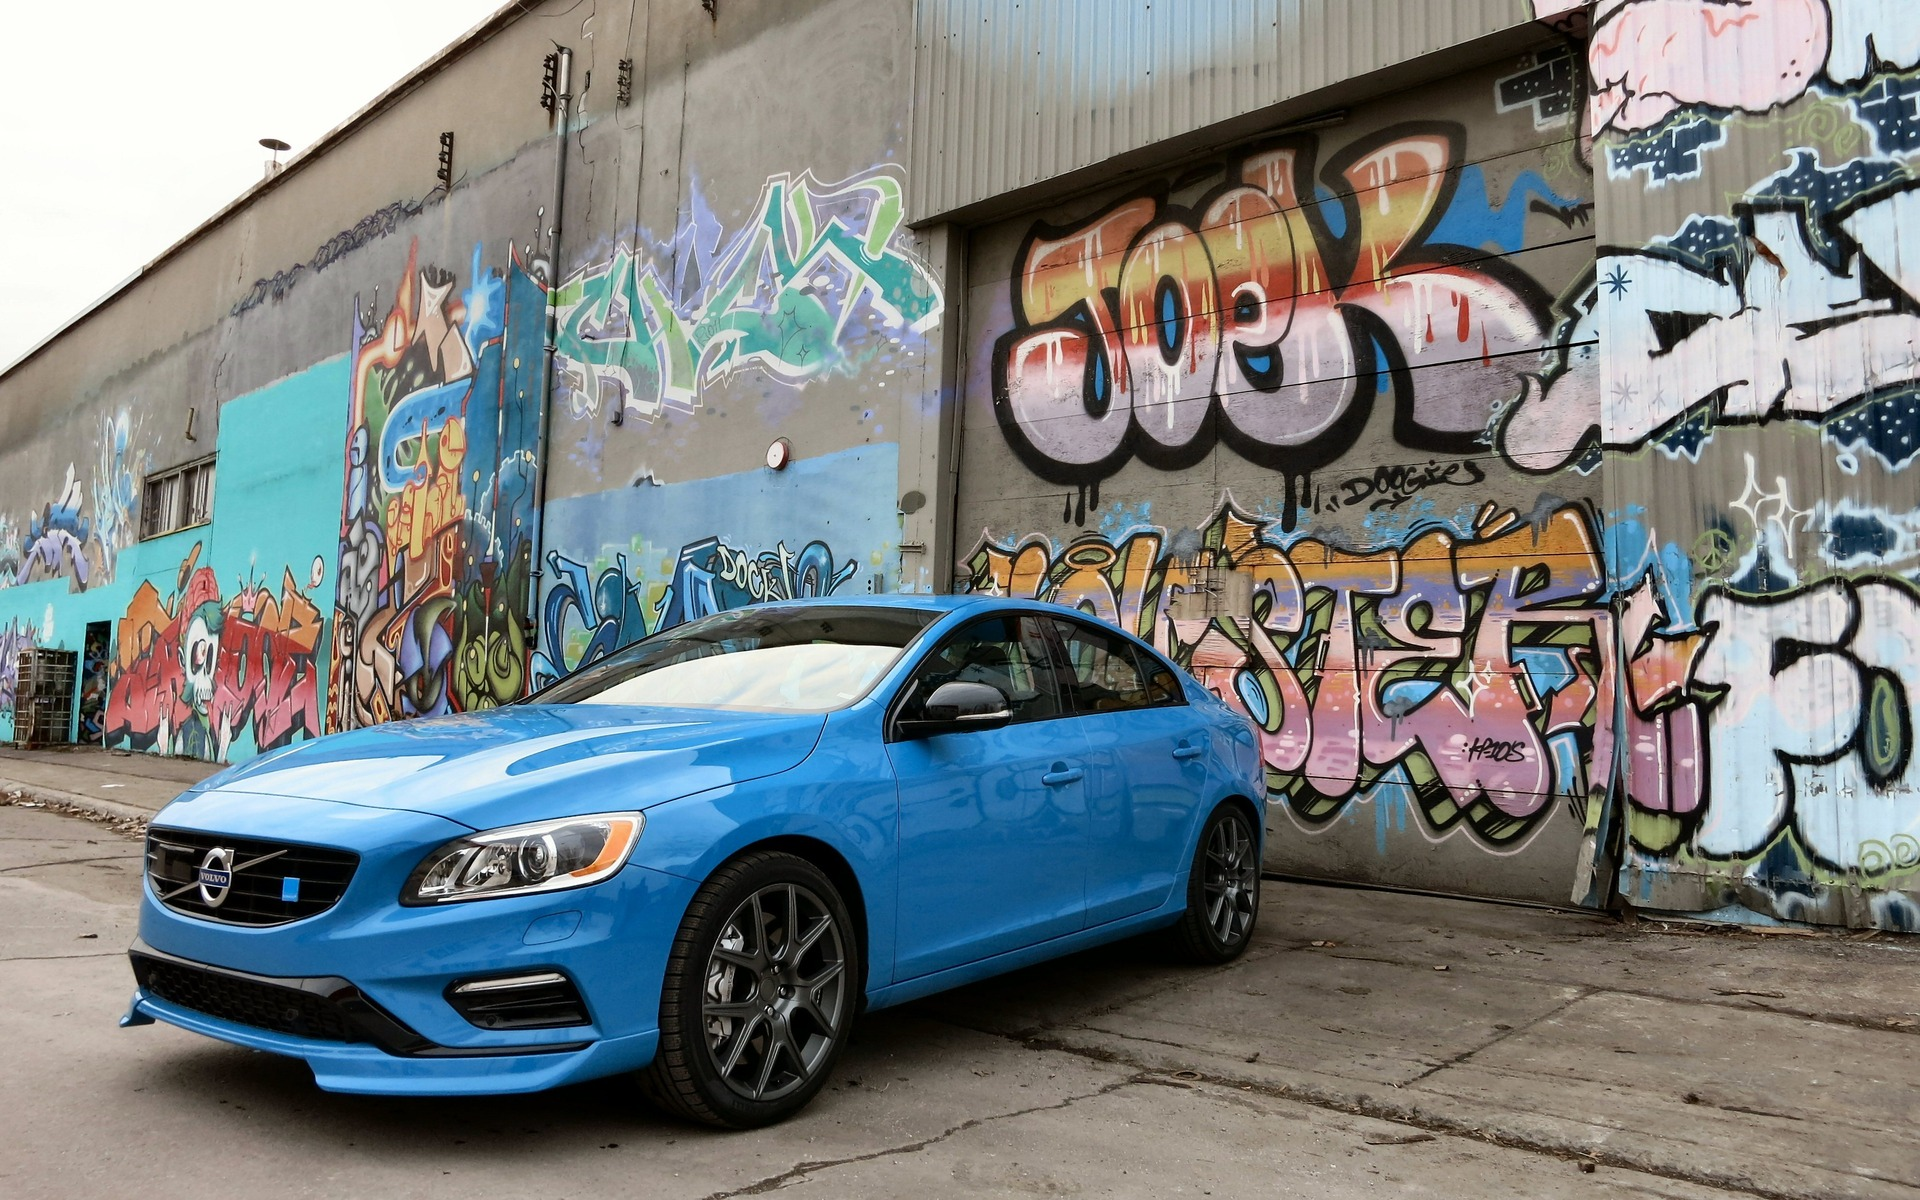 wallpaper and images hd polestar pixel volvo wallpapers car